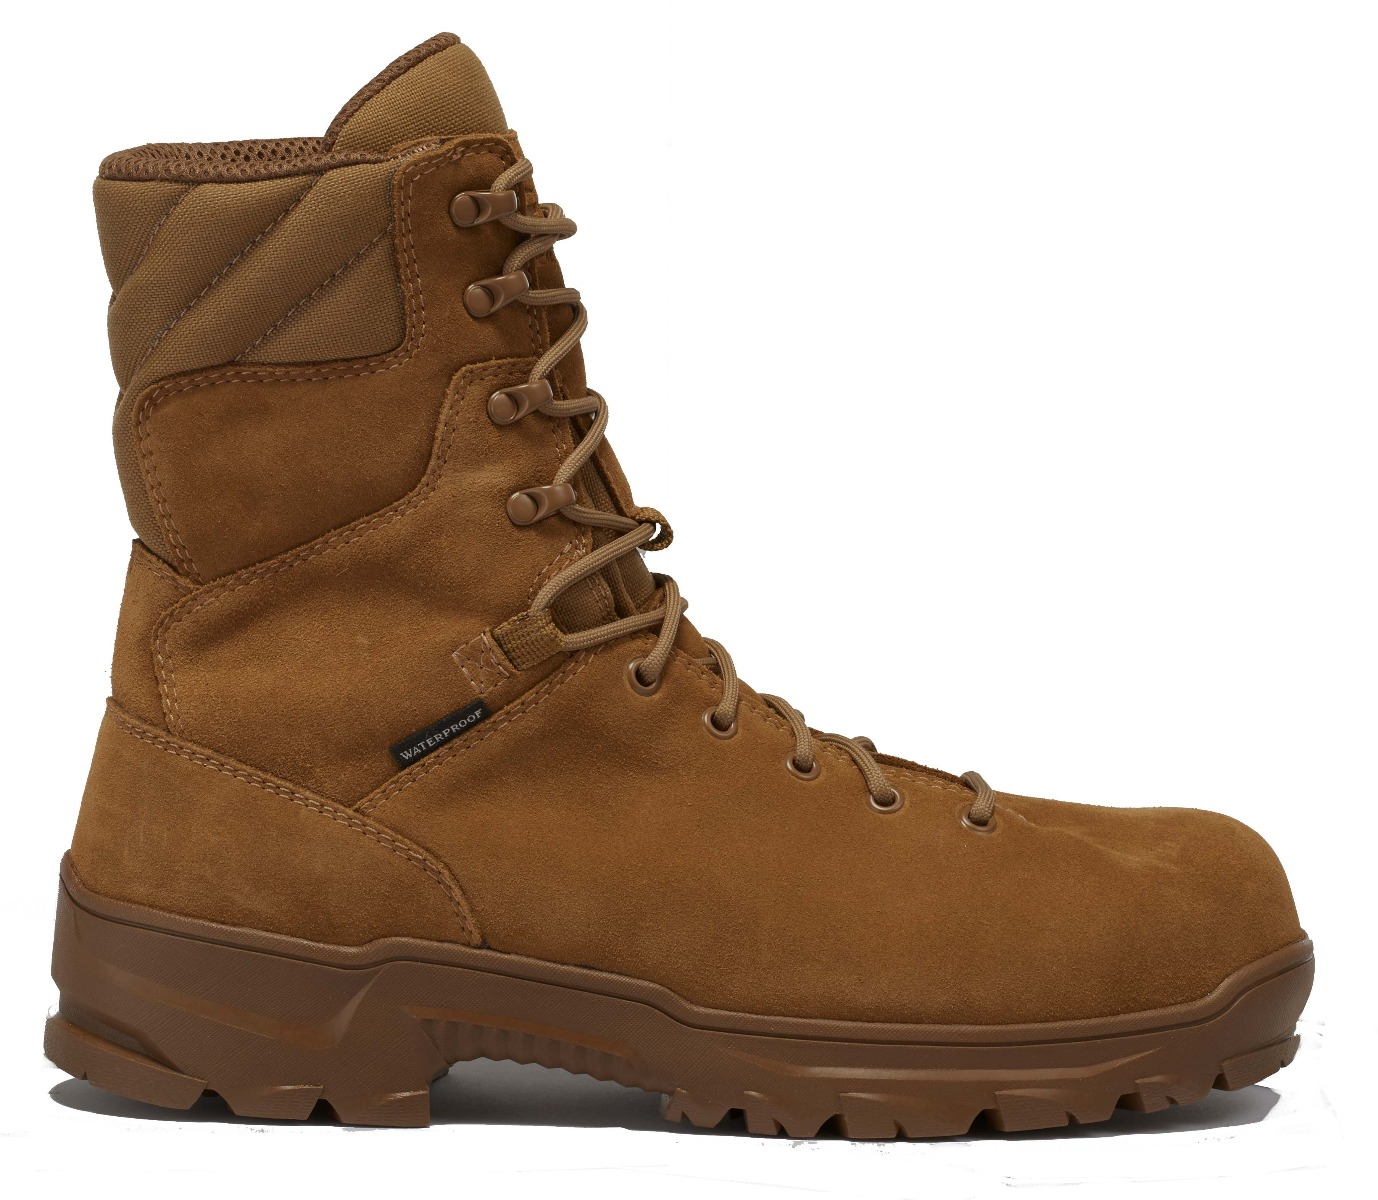 Belleville SQUALL 400G INSULATED COMPOSITE TOE BOOT